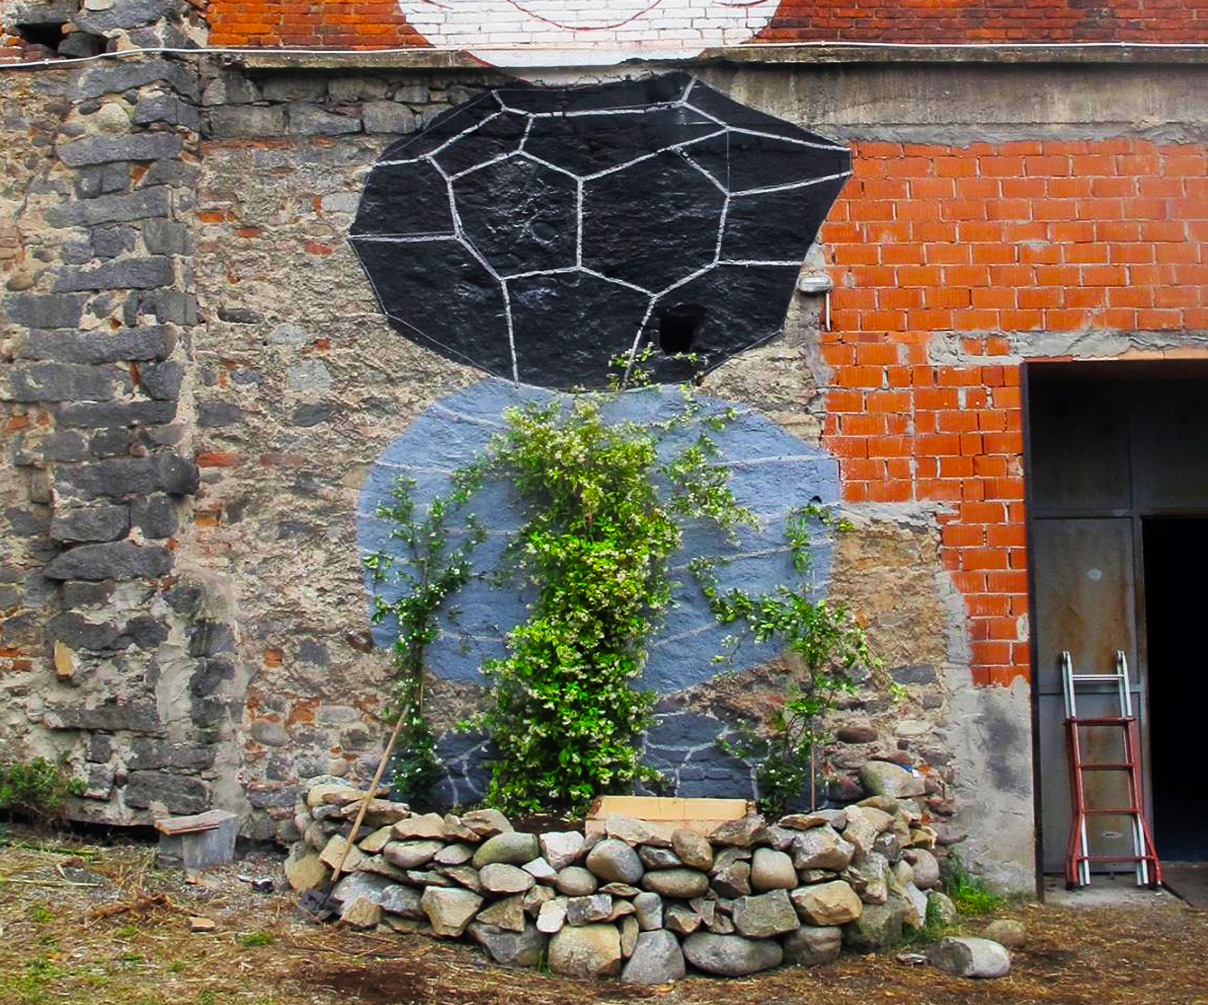 Andreco Used Nature As Art To Create This Intriguing Living Wall